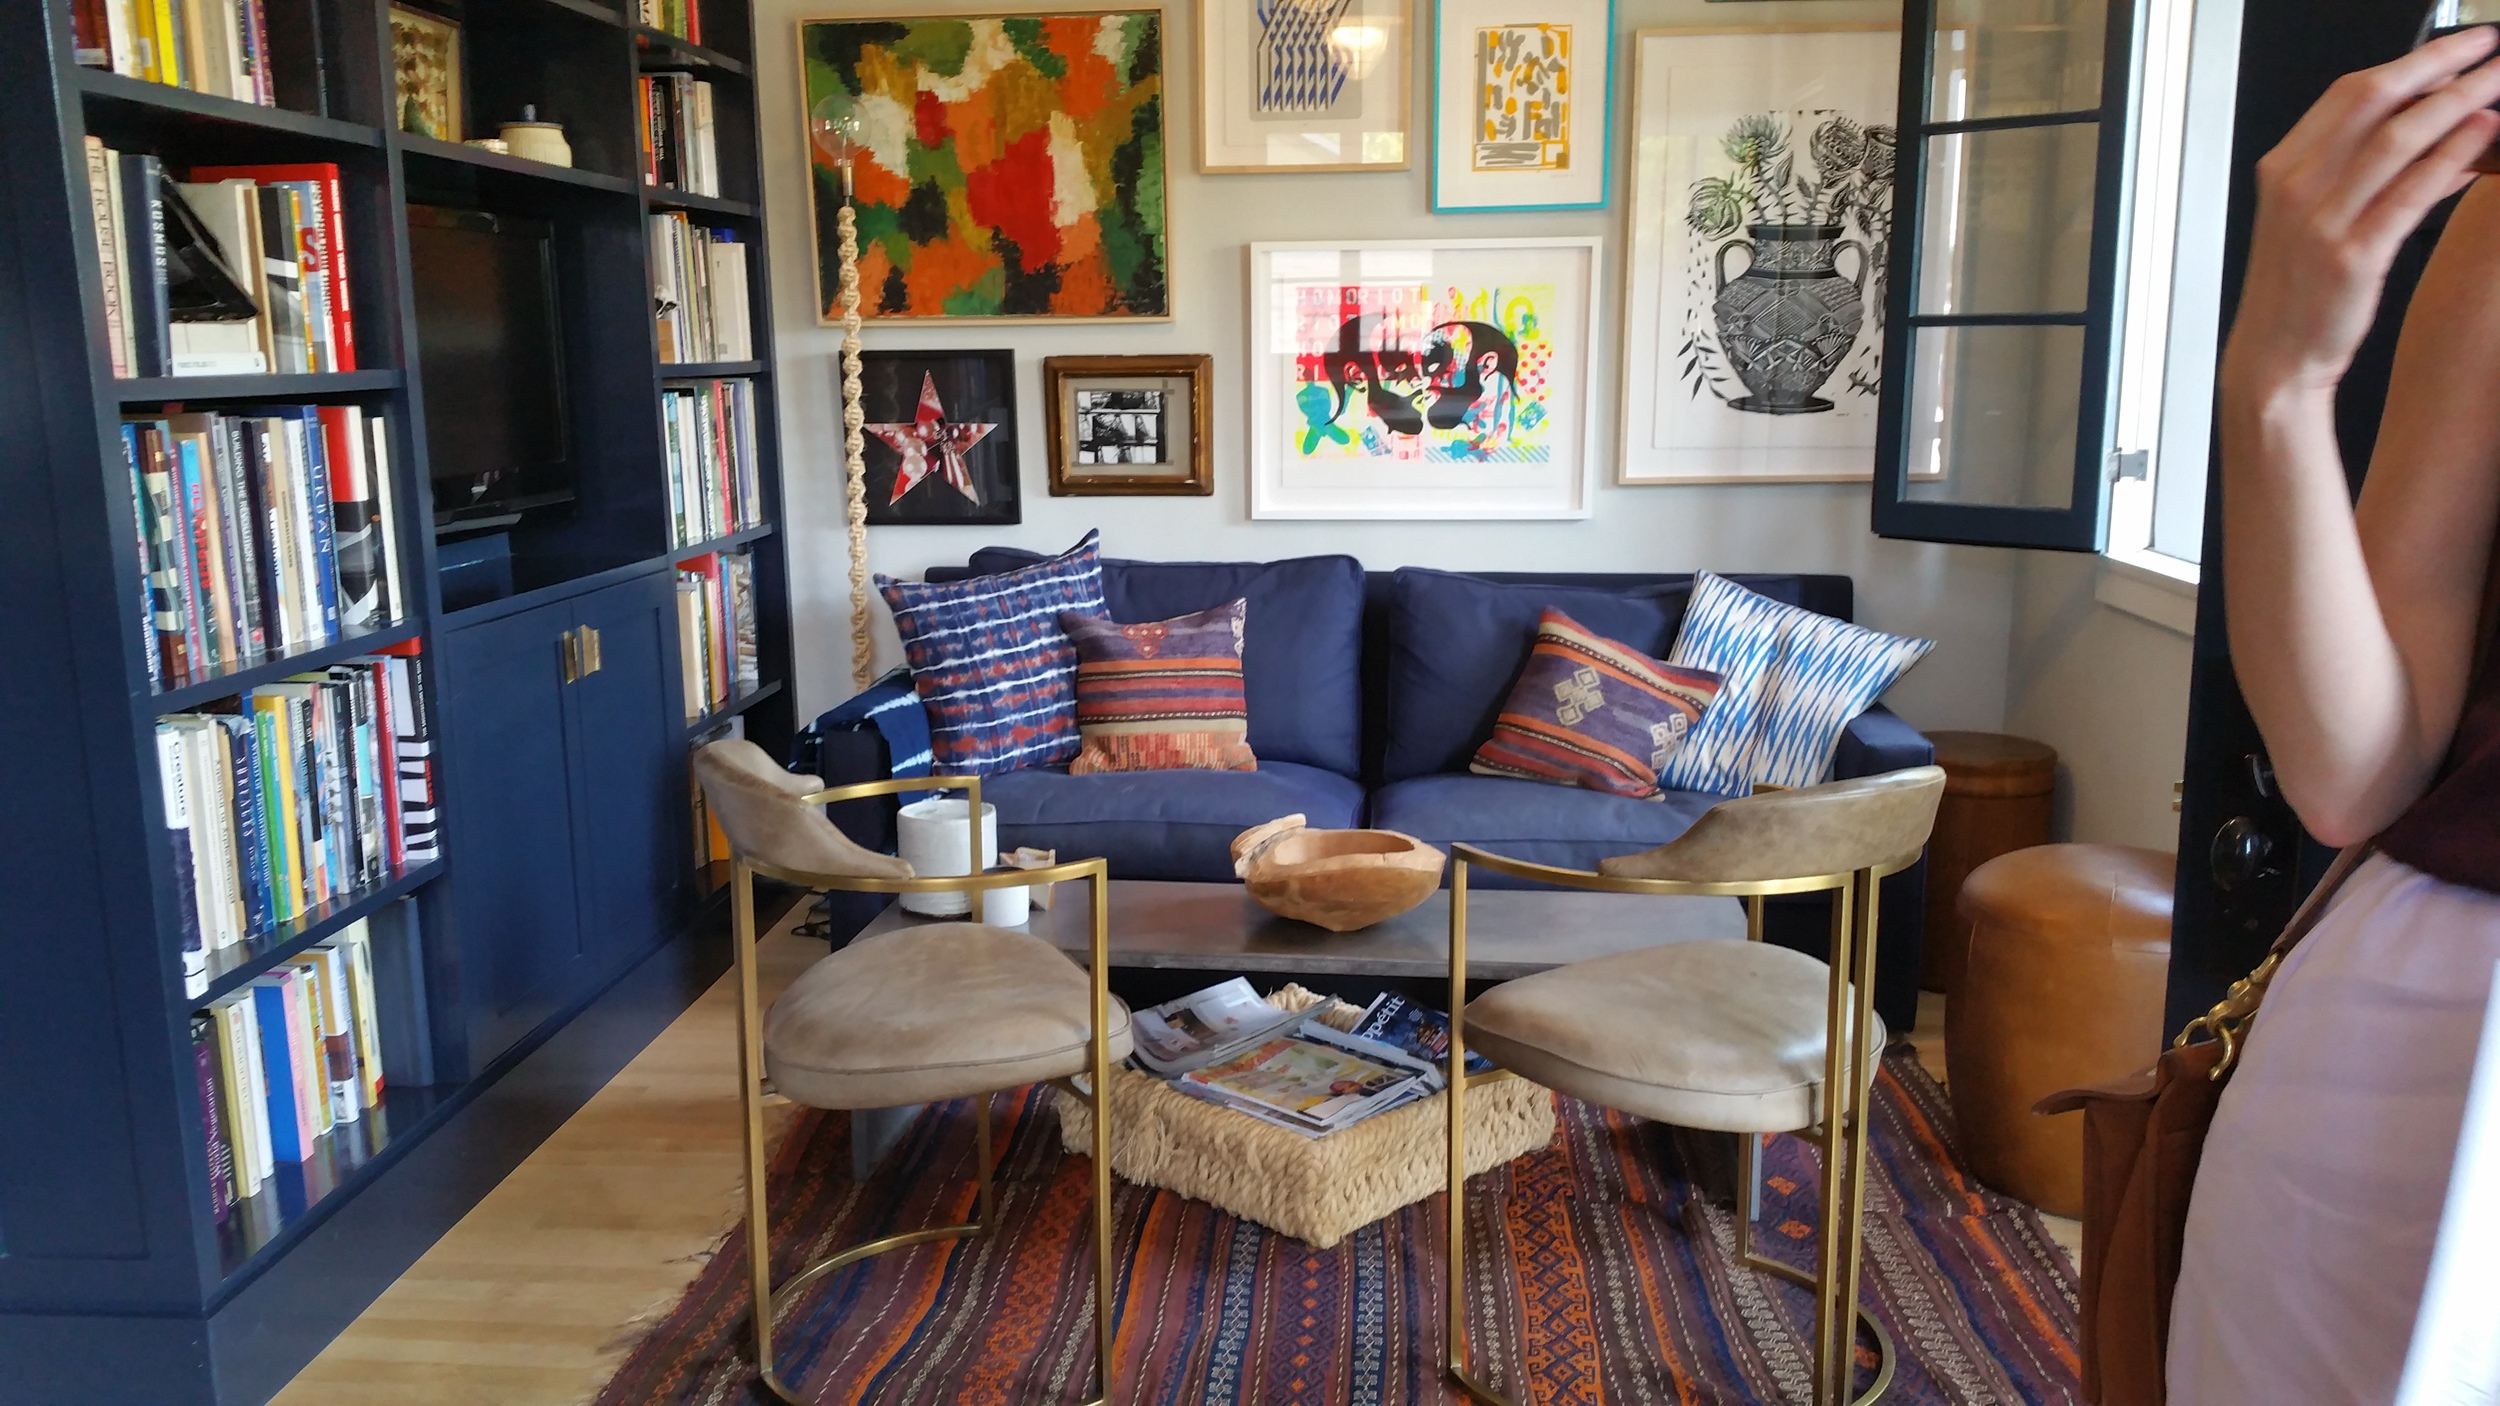 The owner of this house do an impressive job of turning a 575 square foot Los Feliz Square home into a really comfortable and functional place to live.